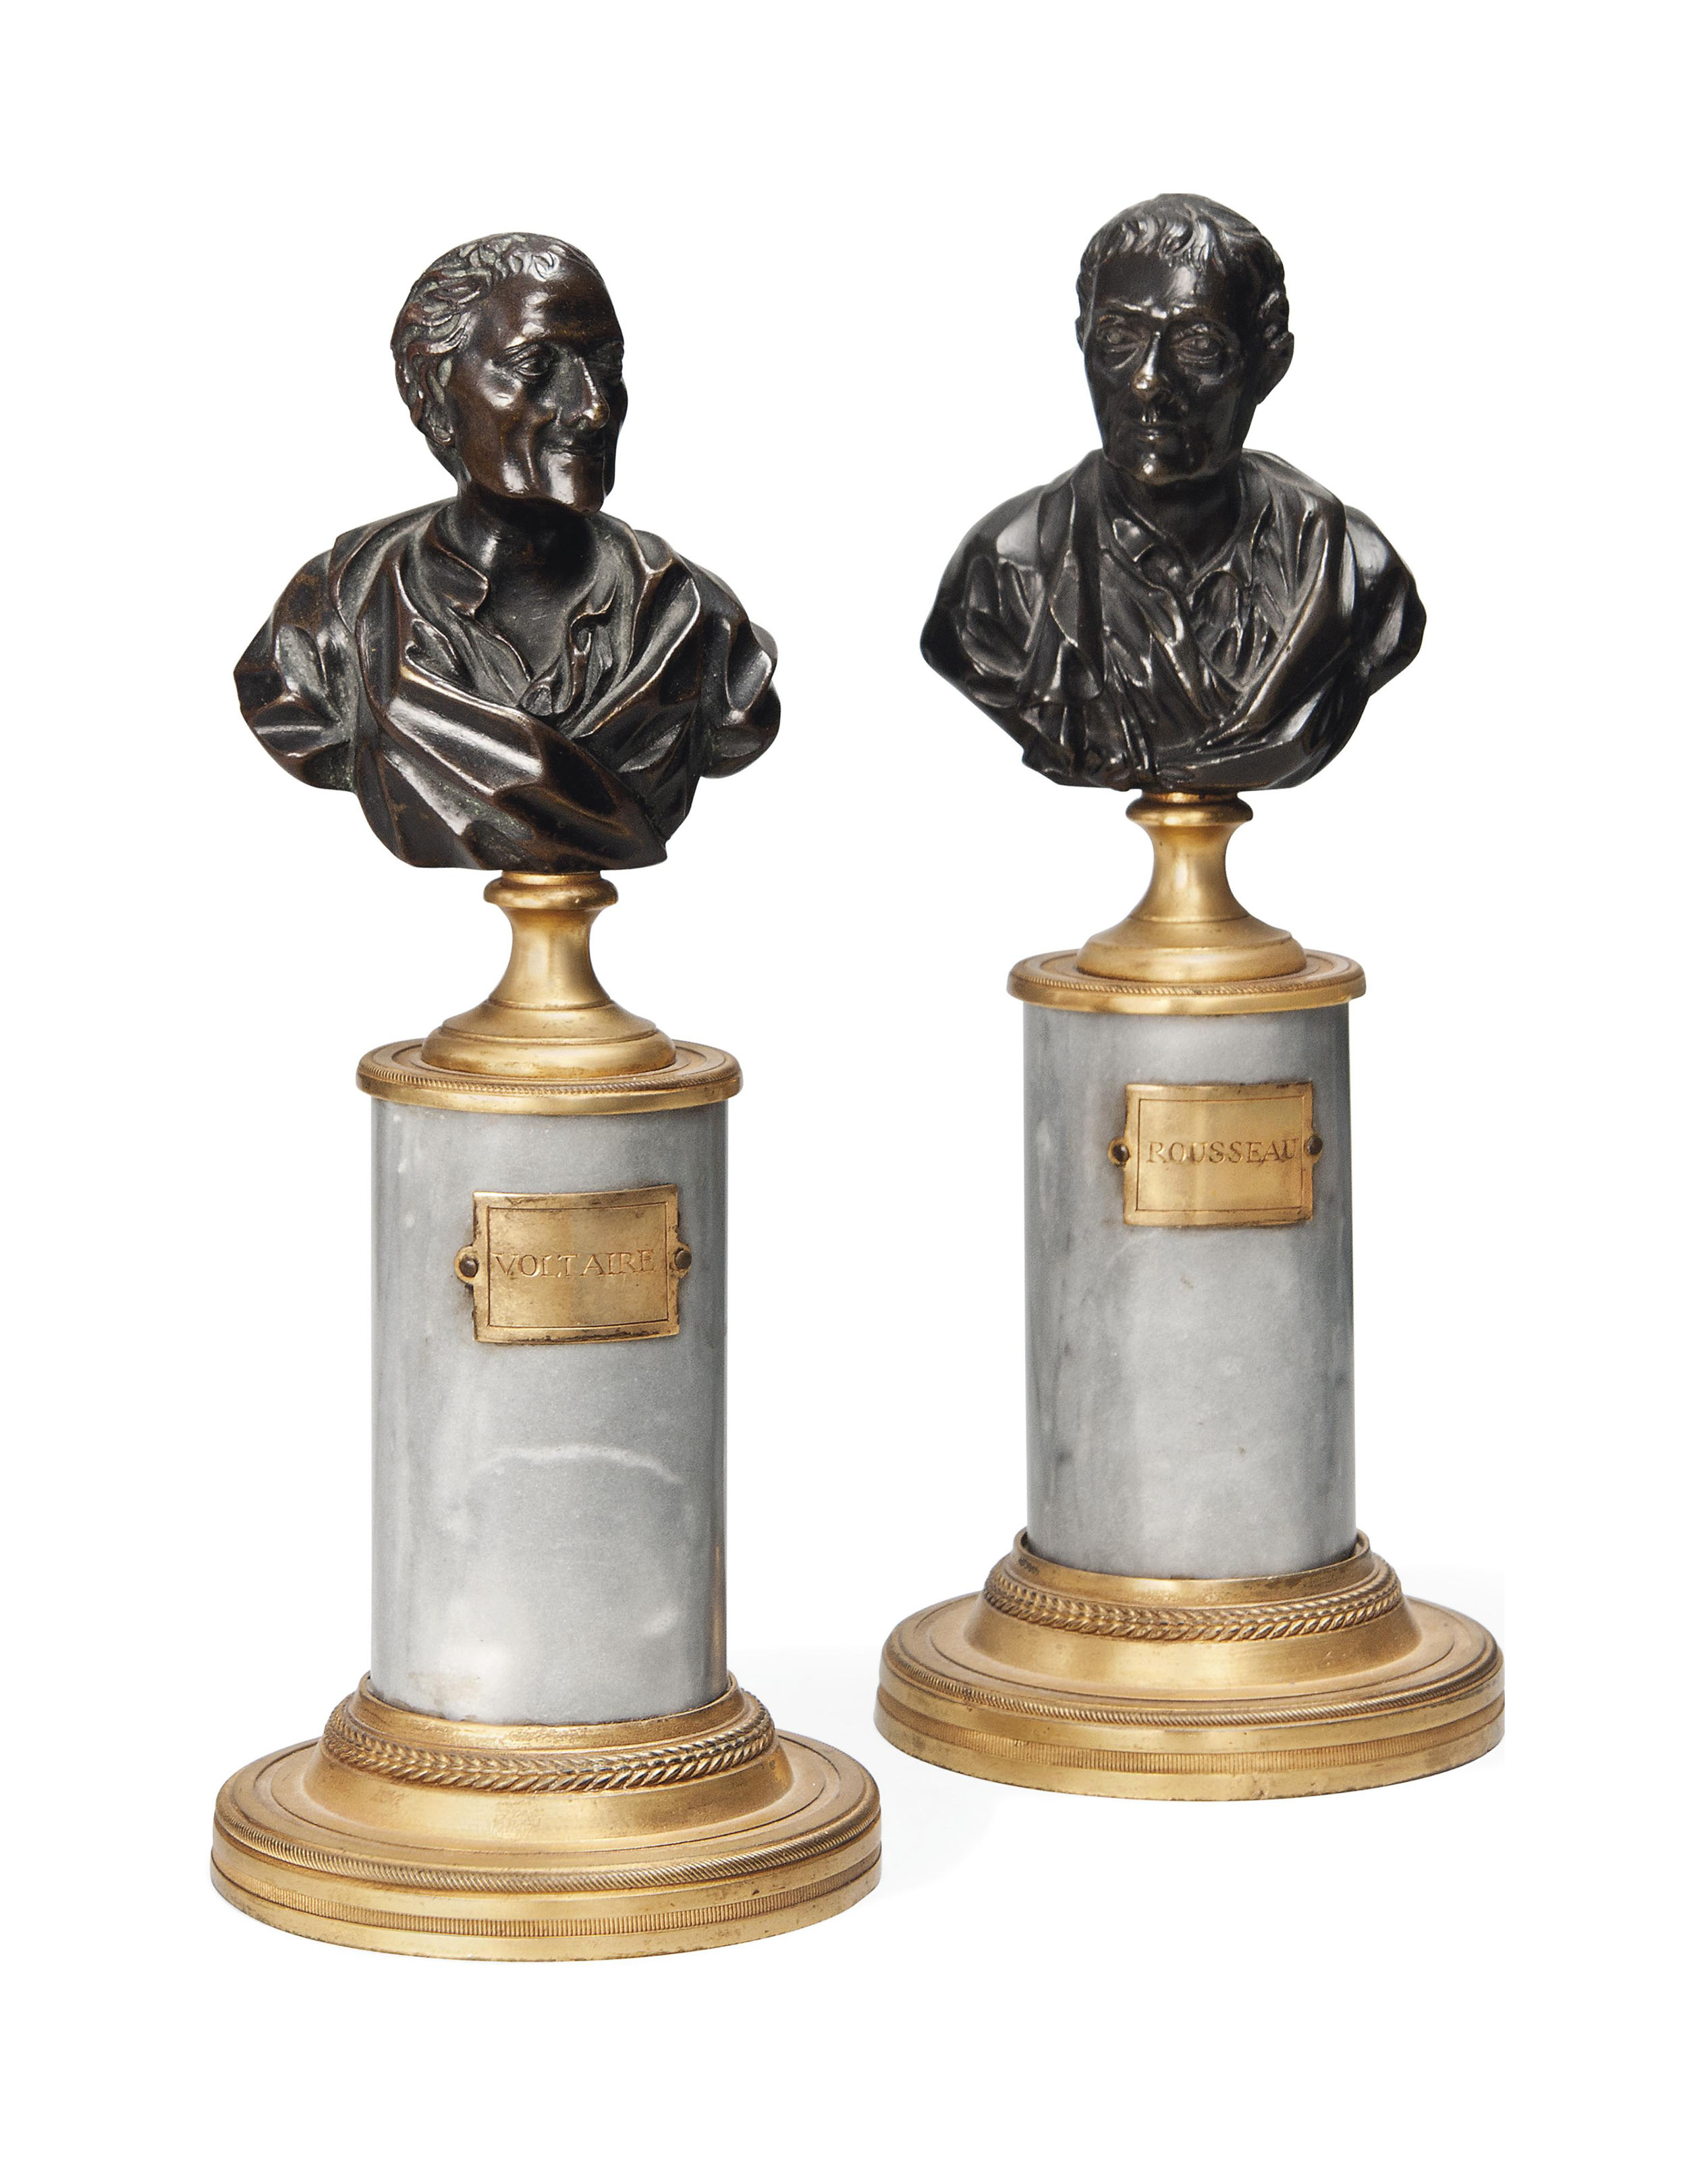 A PAIR OF FRENCH BRONZE BUSTS OF VOLTAIRE AND ROUSSEAU